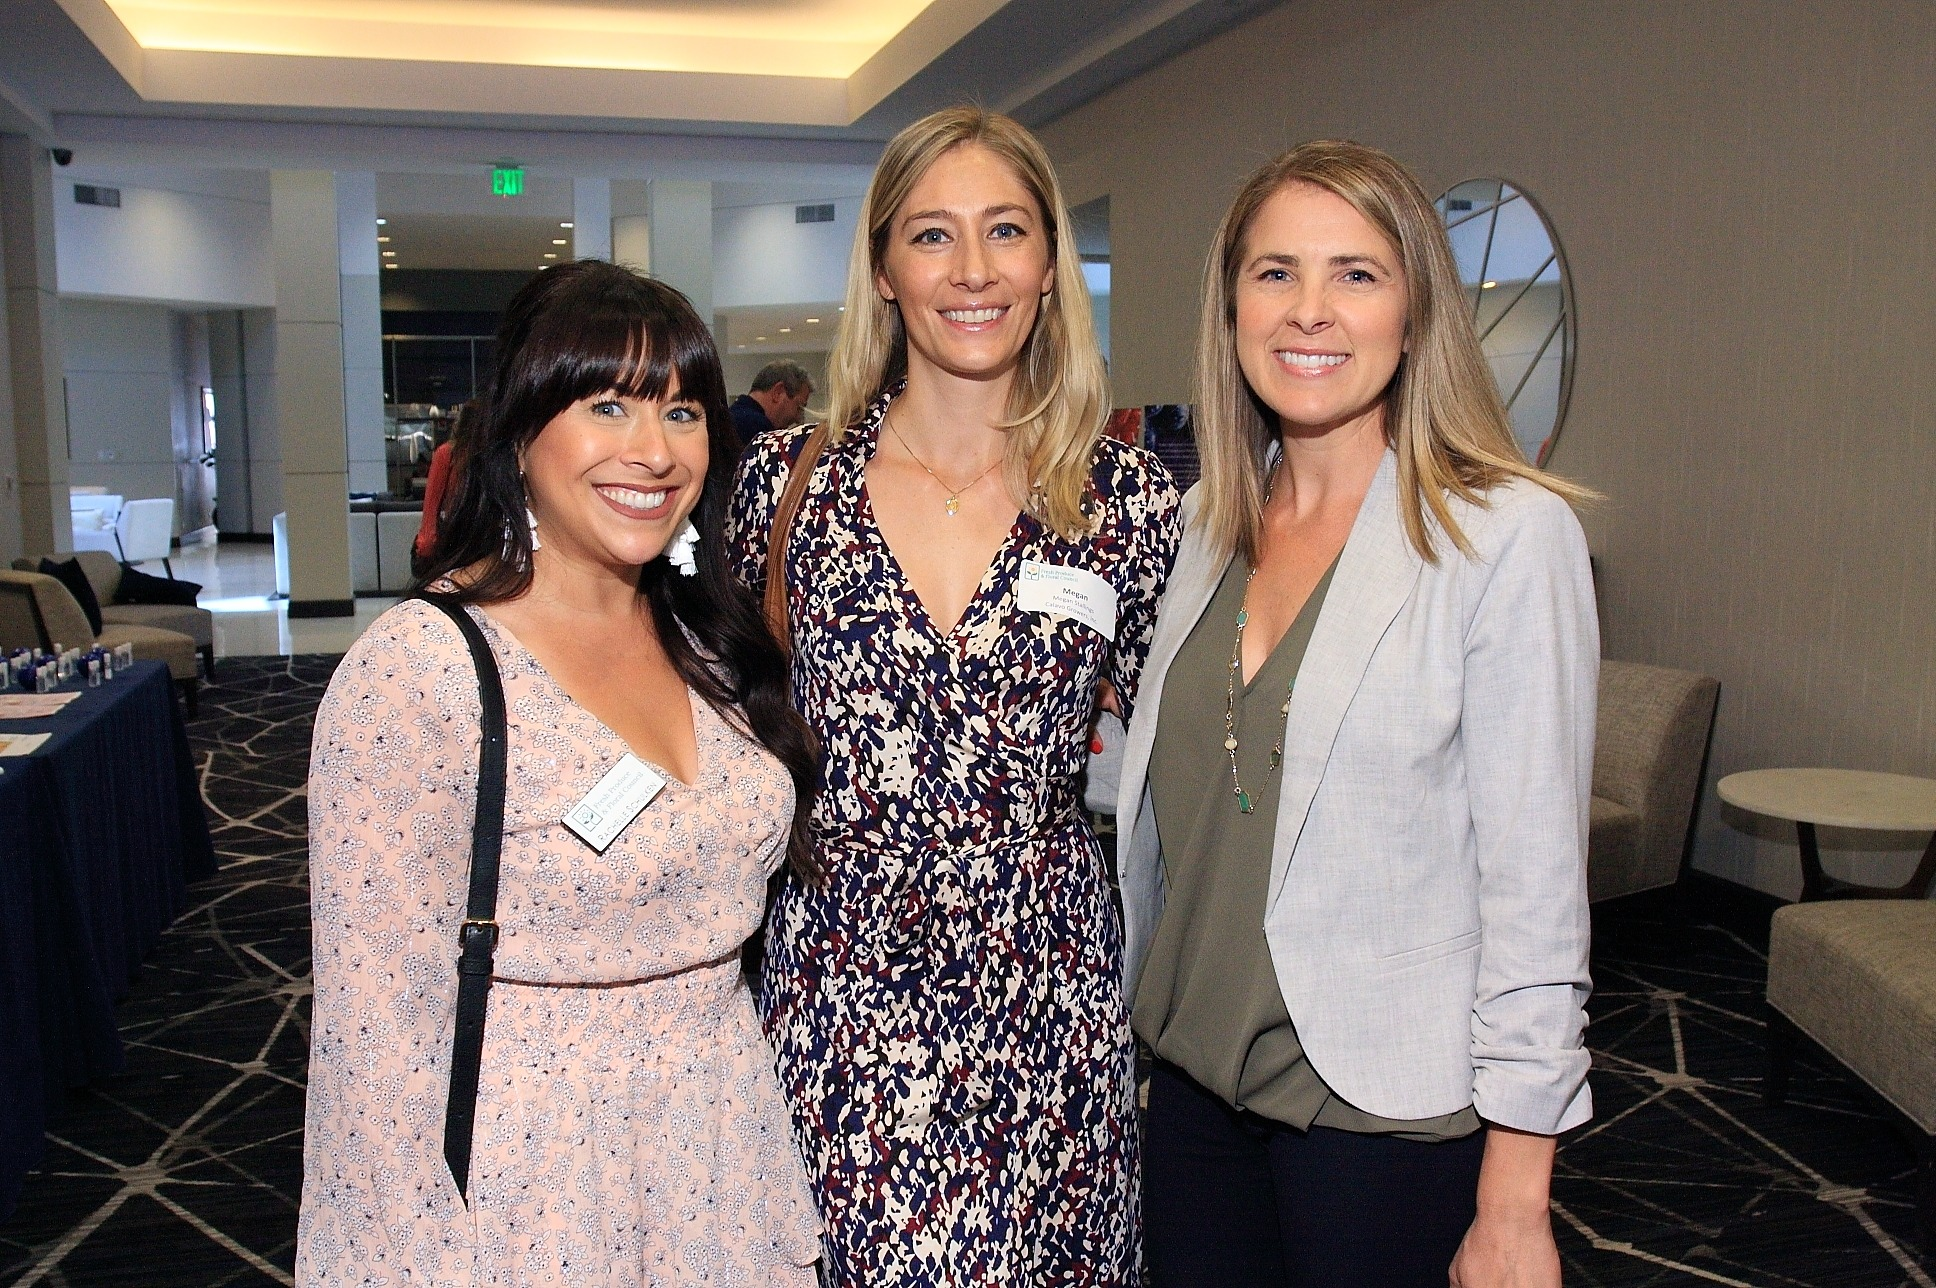 Rachelle Schulken of Renaissance Food Group, LLC., Megan Stallings of Calavo Growers Inc., and Audrey Dunne of Curation Foods, catching up at the post-luncheon networking hour.